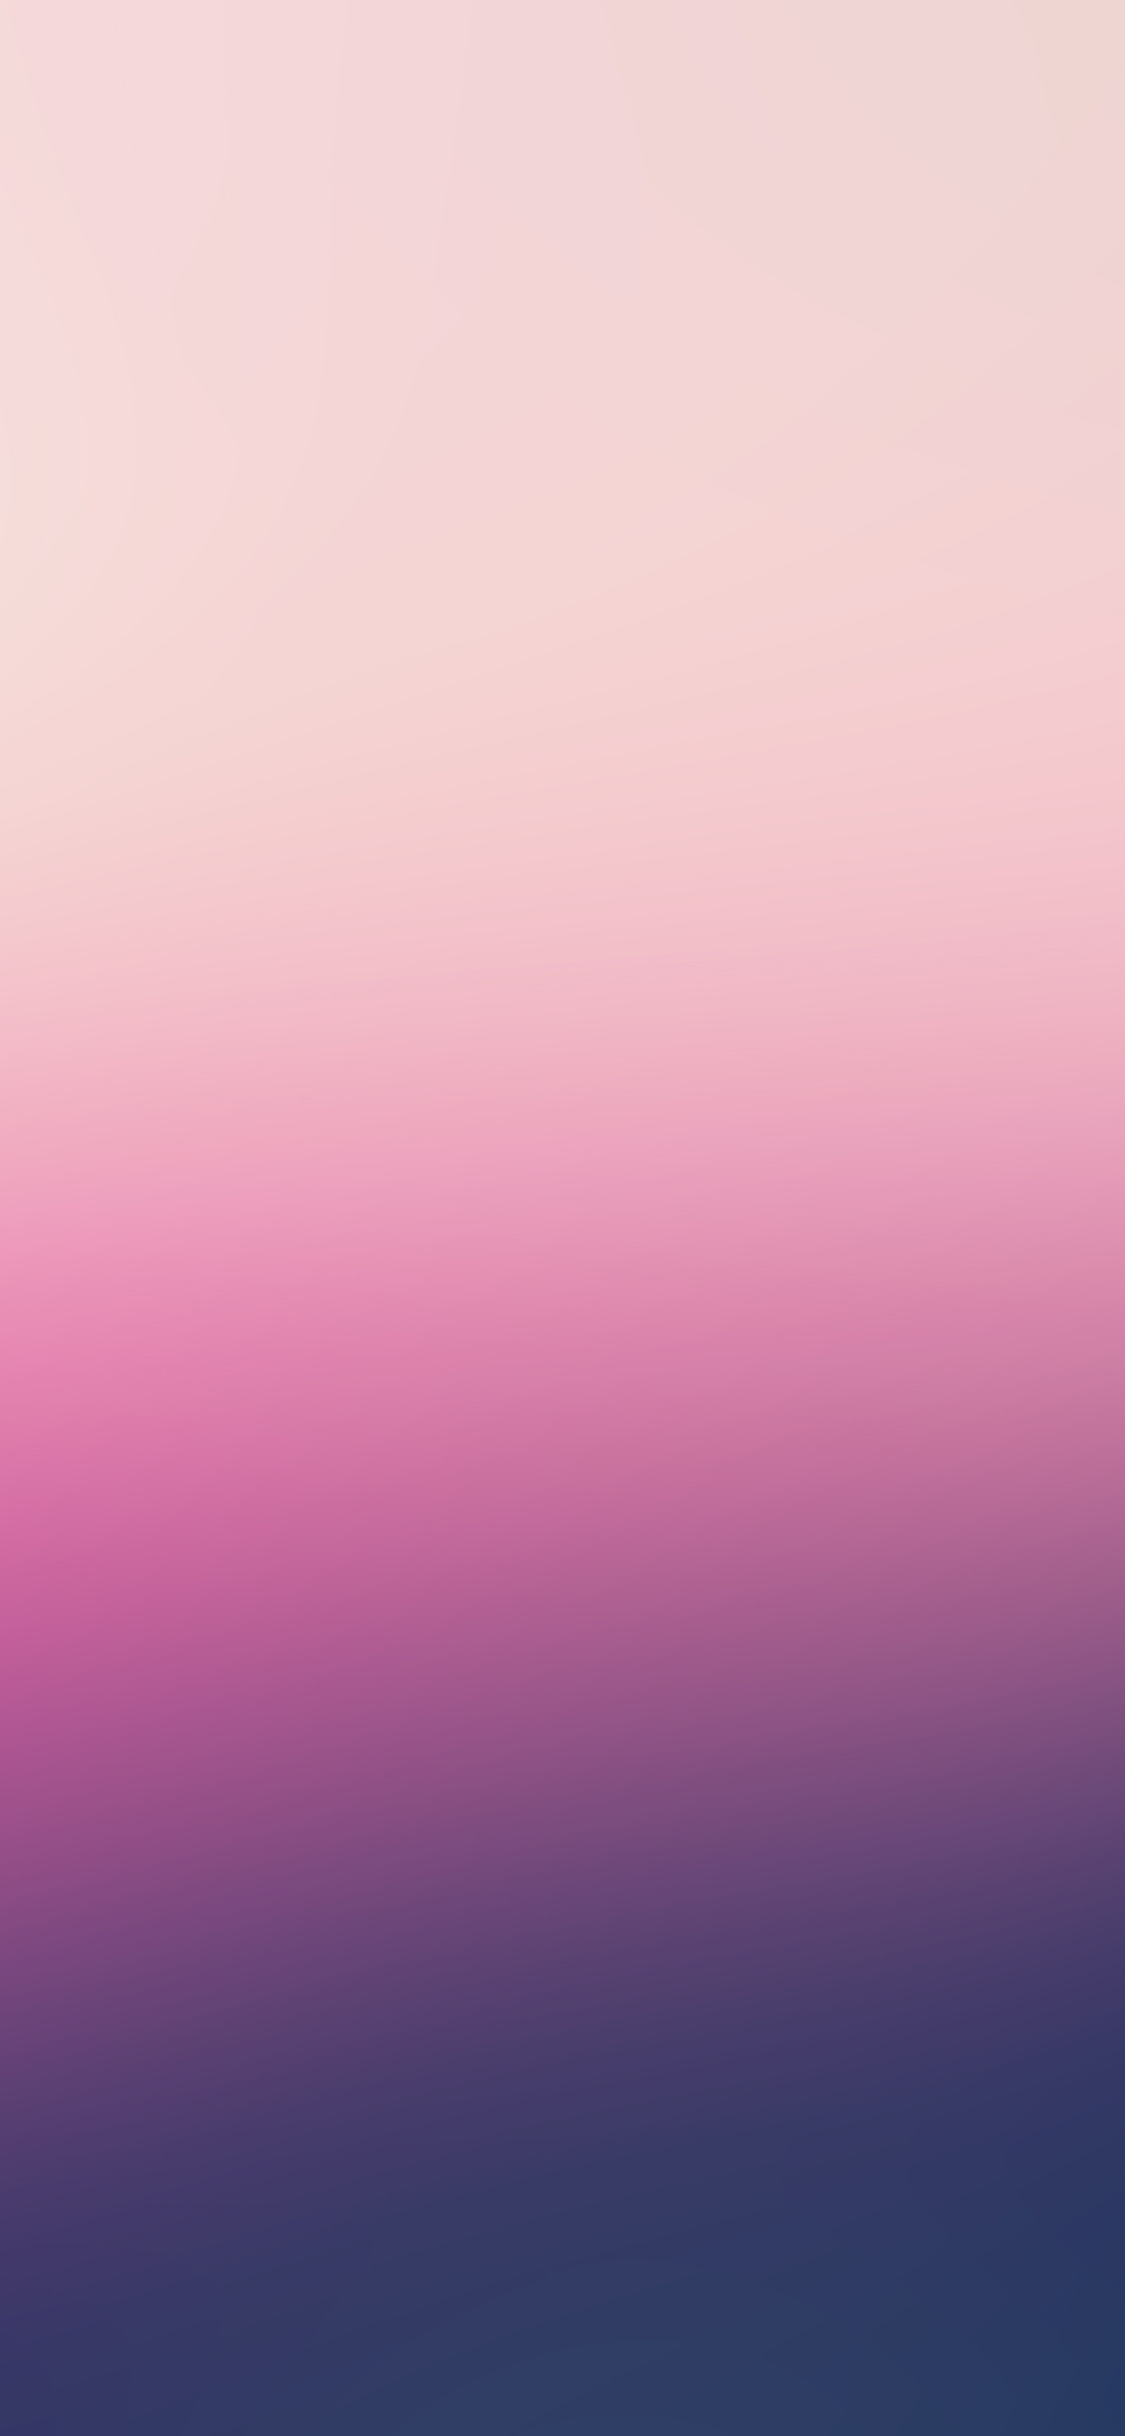 iPhoneXpapers.com-Apple-iPhone-wallpaper-sf53-pink-party-gradation-blur